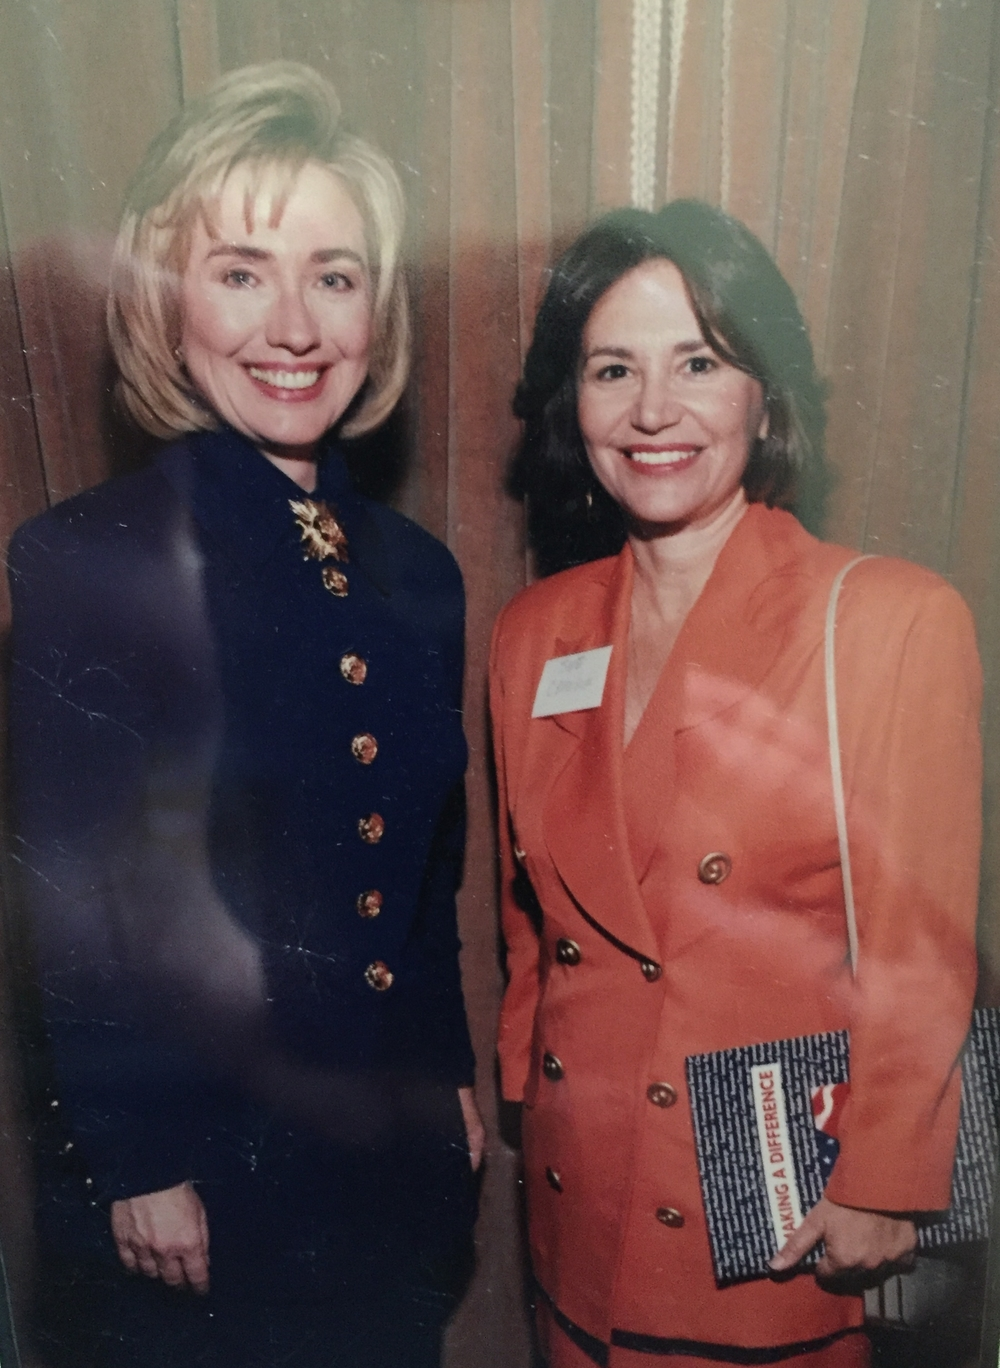 Hillary and I have been waiting a long time